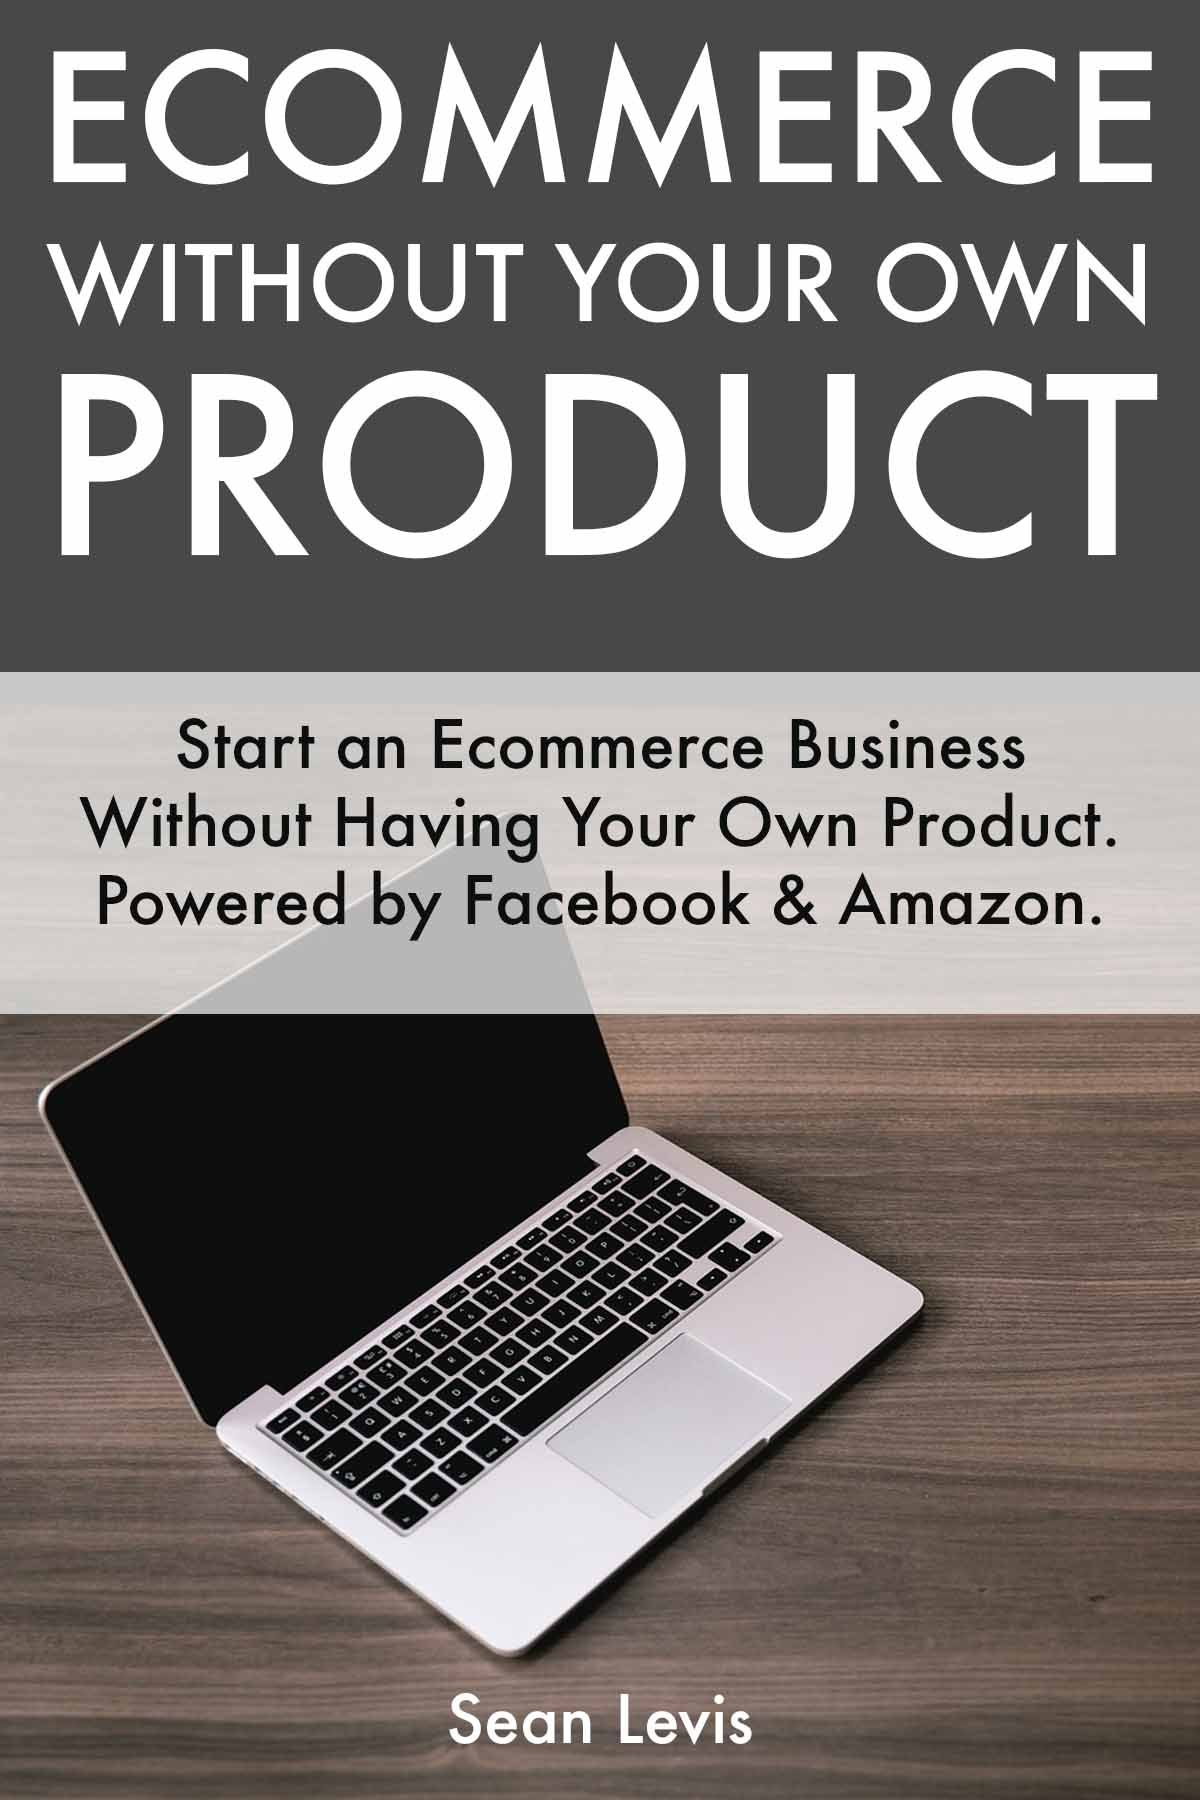 Ecommerce Without Your Own Product: Start an Ecommerce Business Without Having Your Own Product. Powered by Facebook & Amazon.